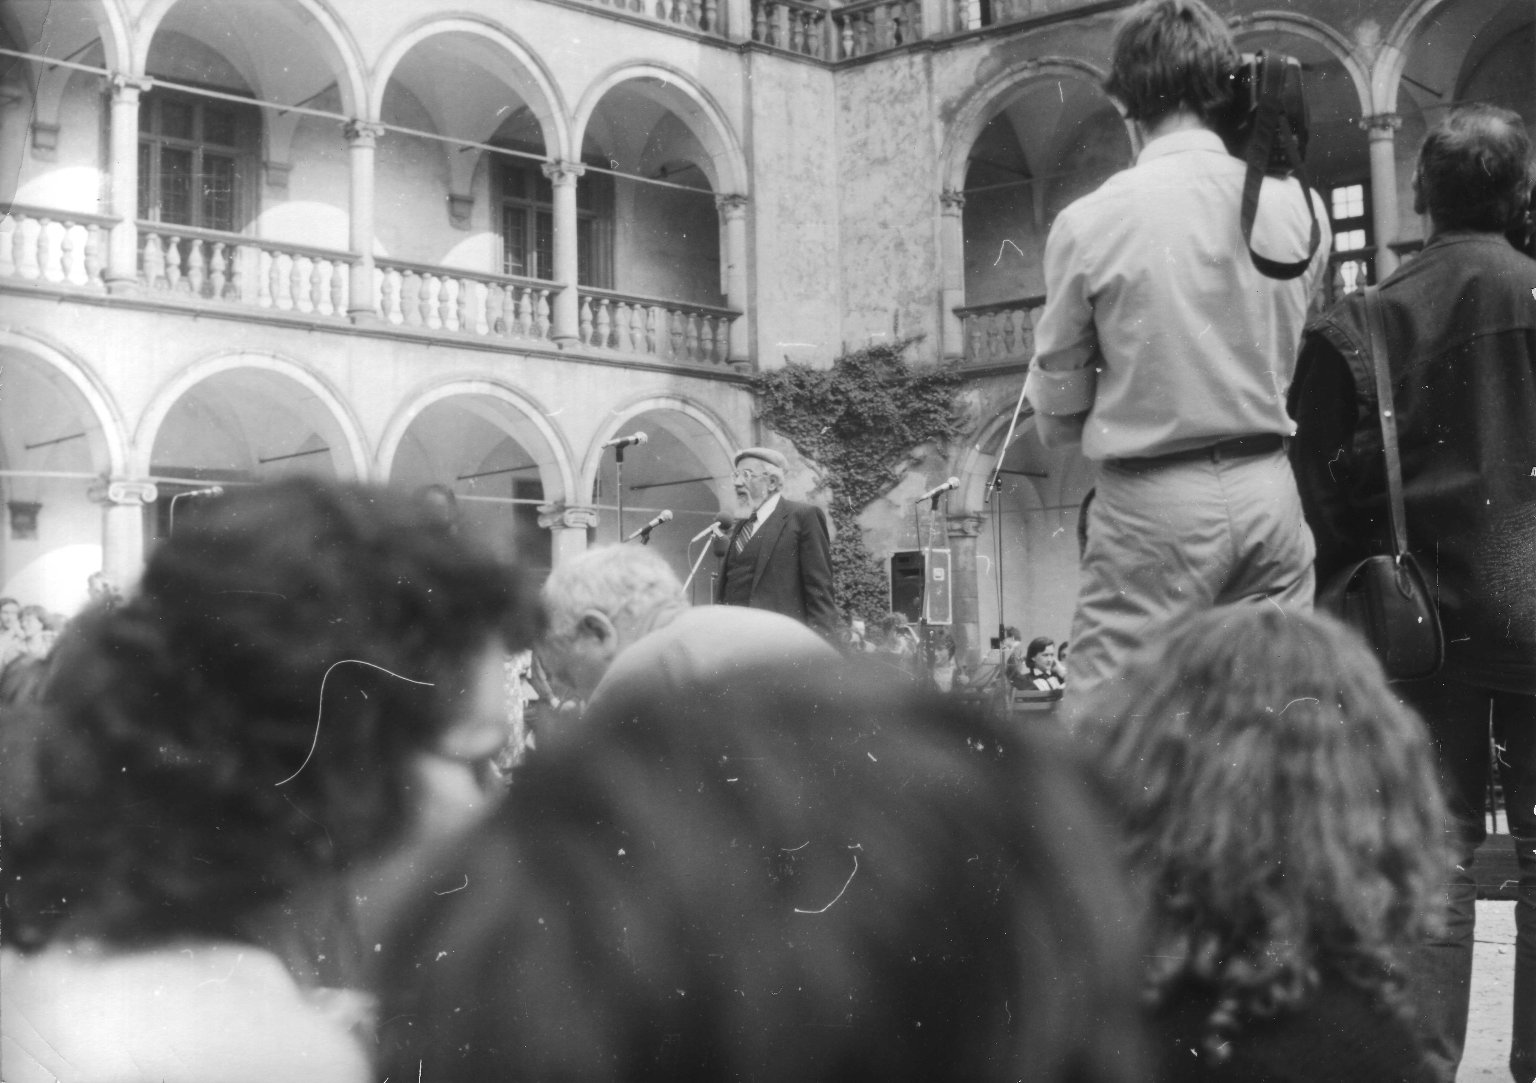 Rabbi Zalman Schachter-Shalomi speaking at the Festival of the Spirit in Krakow, Poland, with attendees and the media in the foreground, ca. 1985.